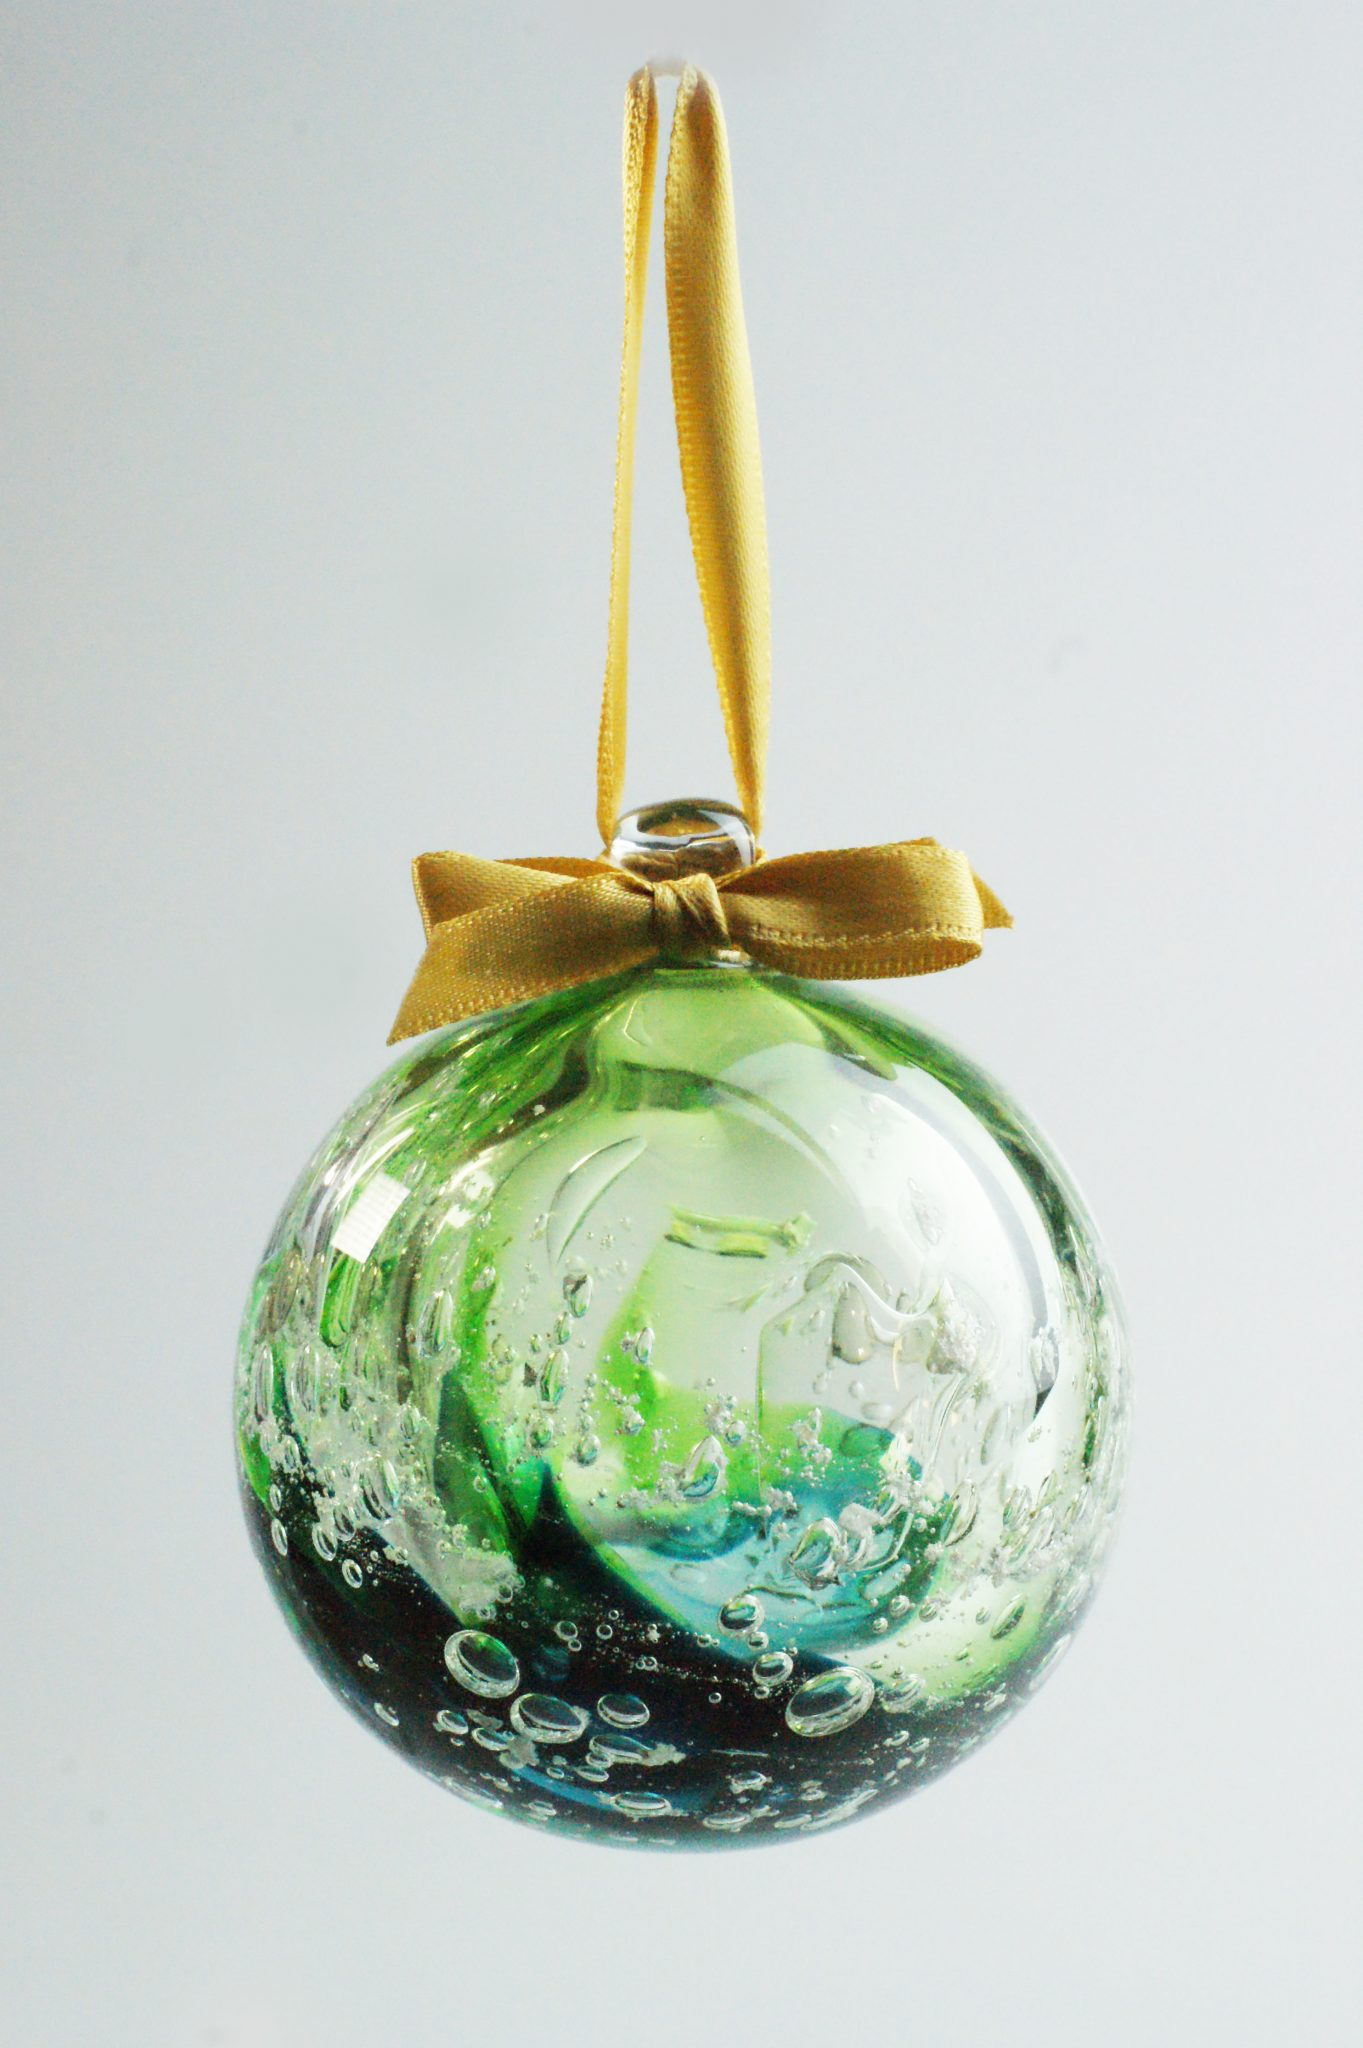 Christmas Baubles.Memorial Christmas Bauble